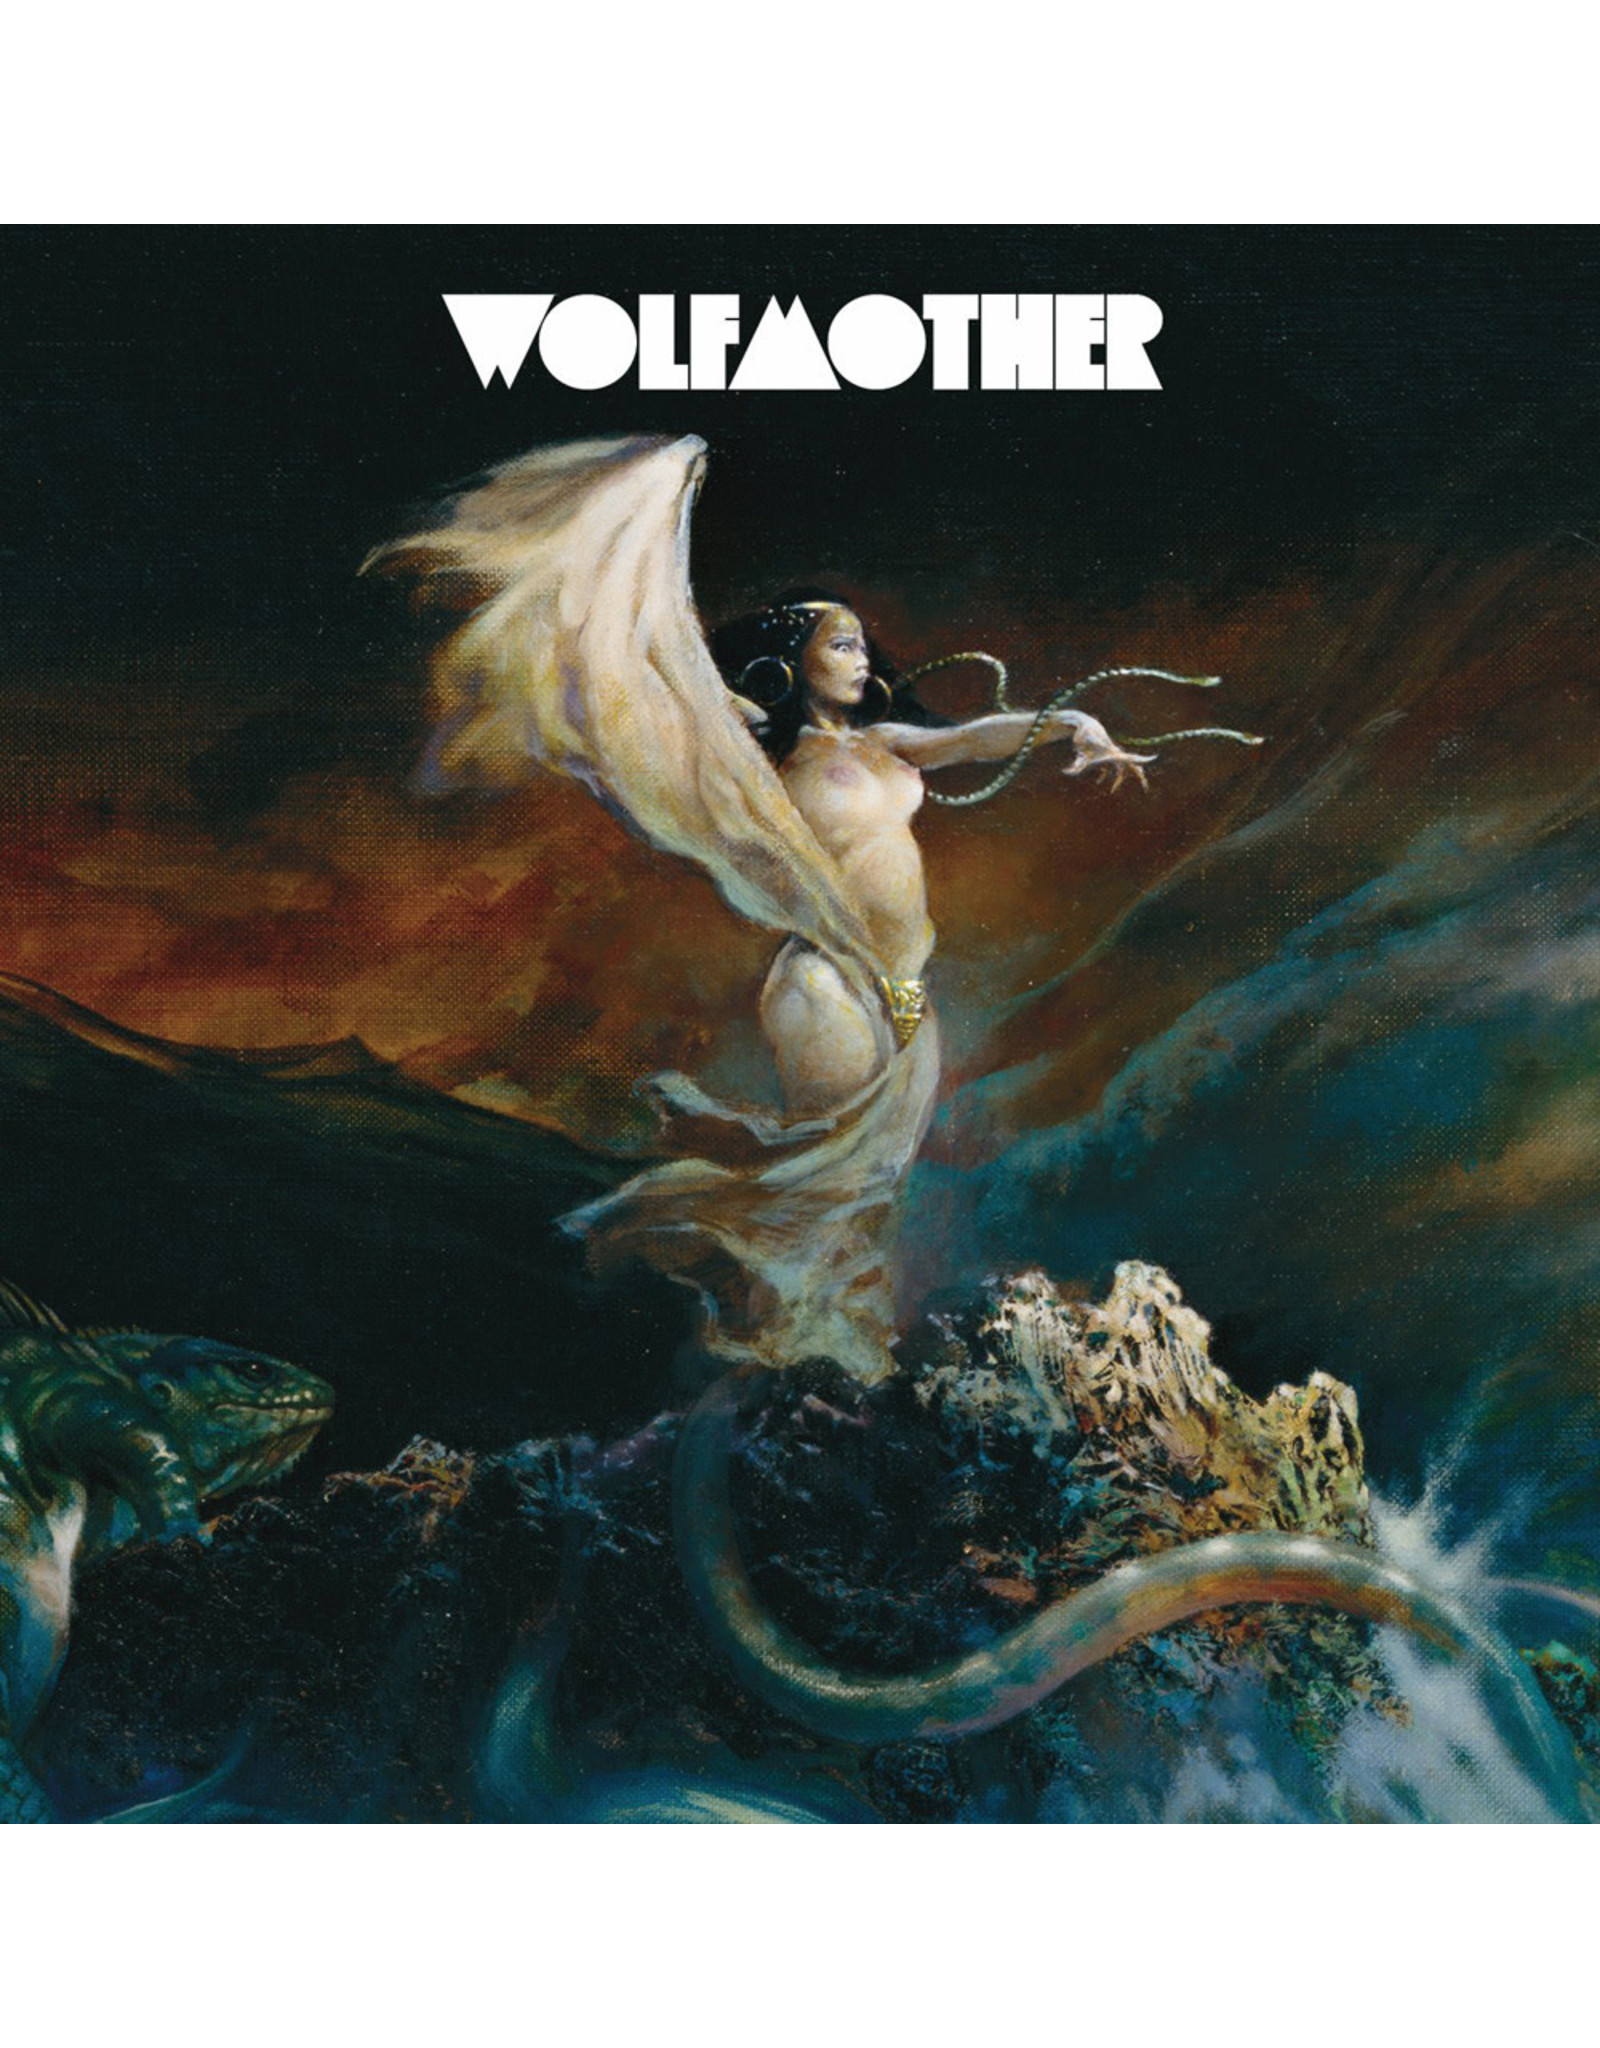 Wolfmother - Wolfmother (Deluxe Edition)